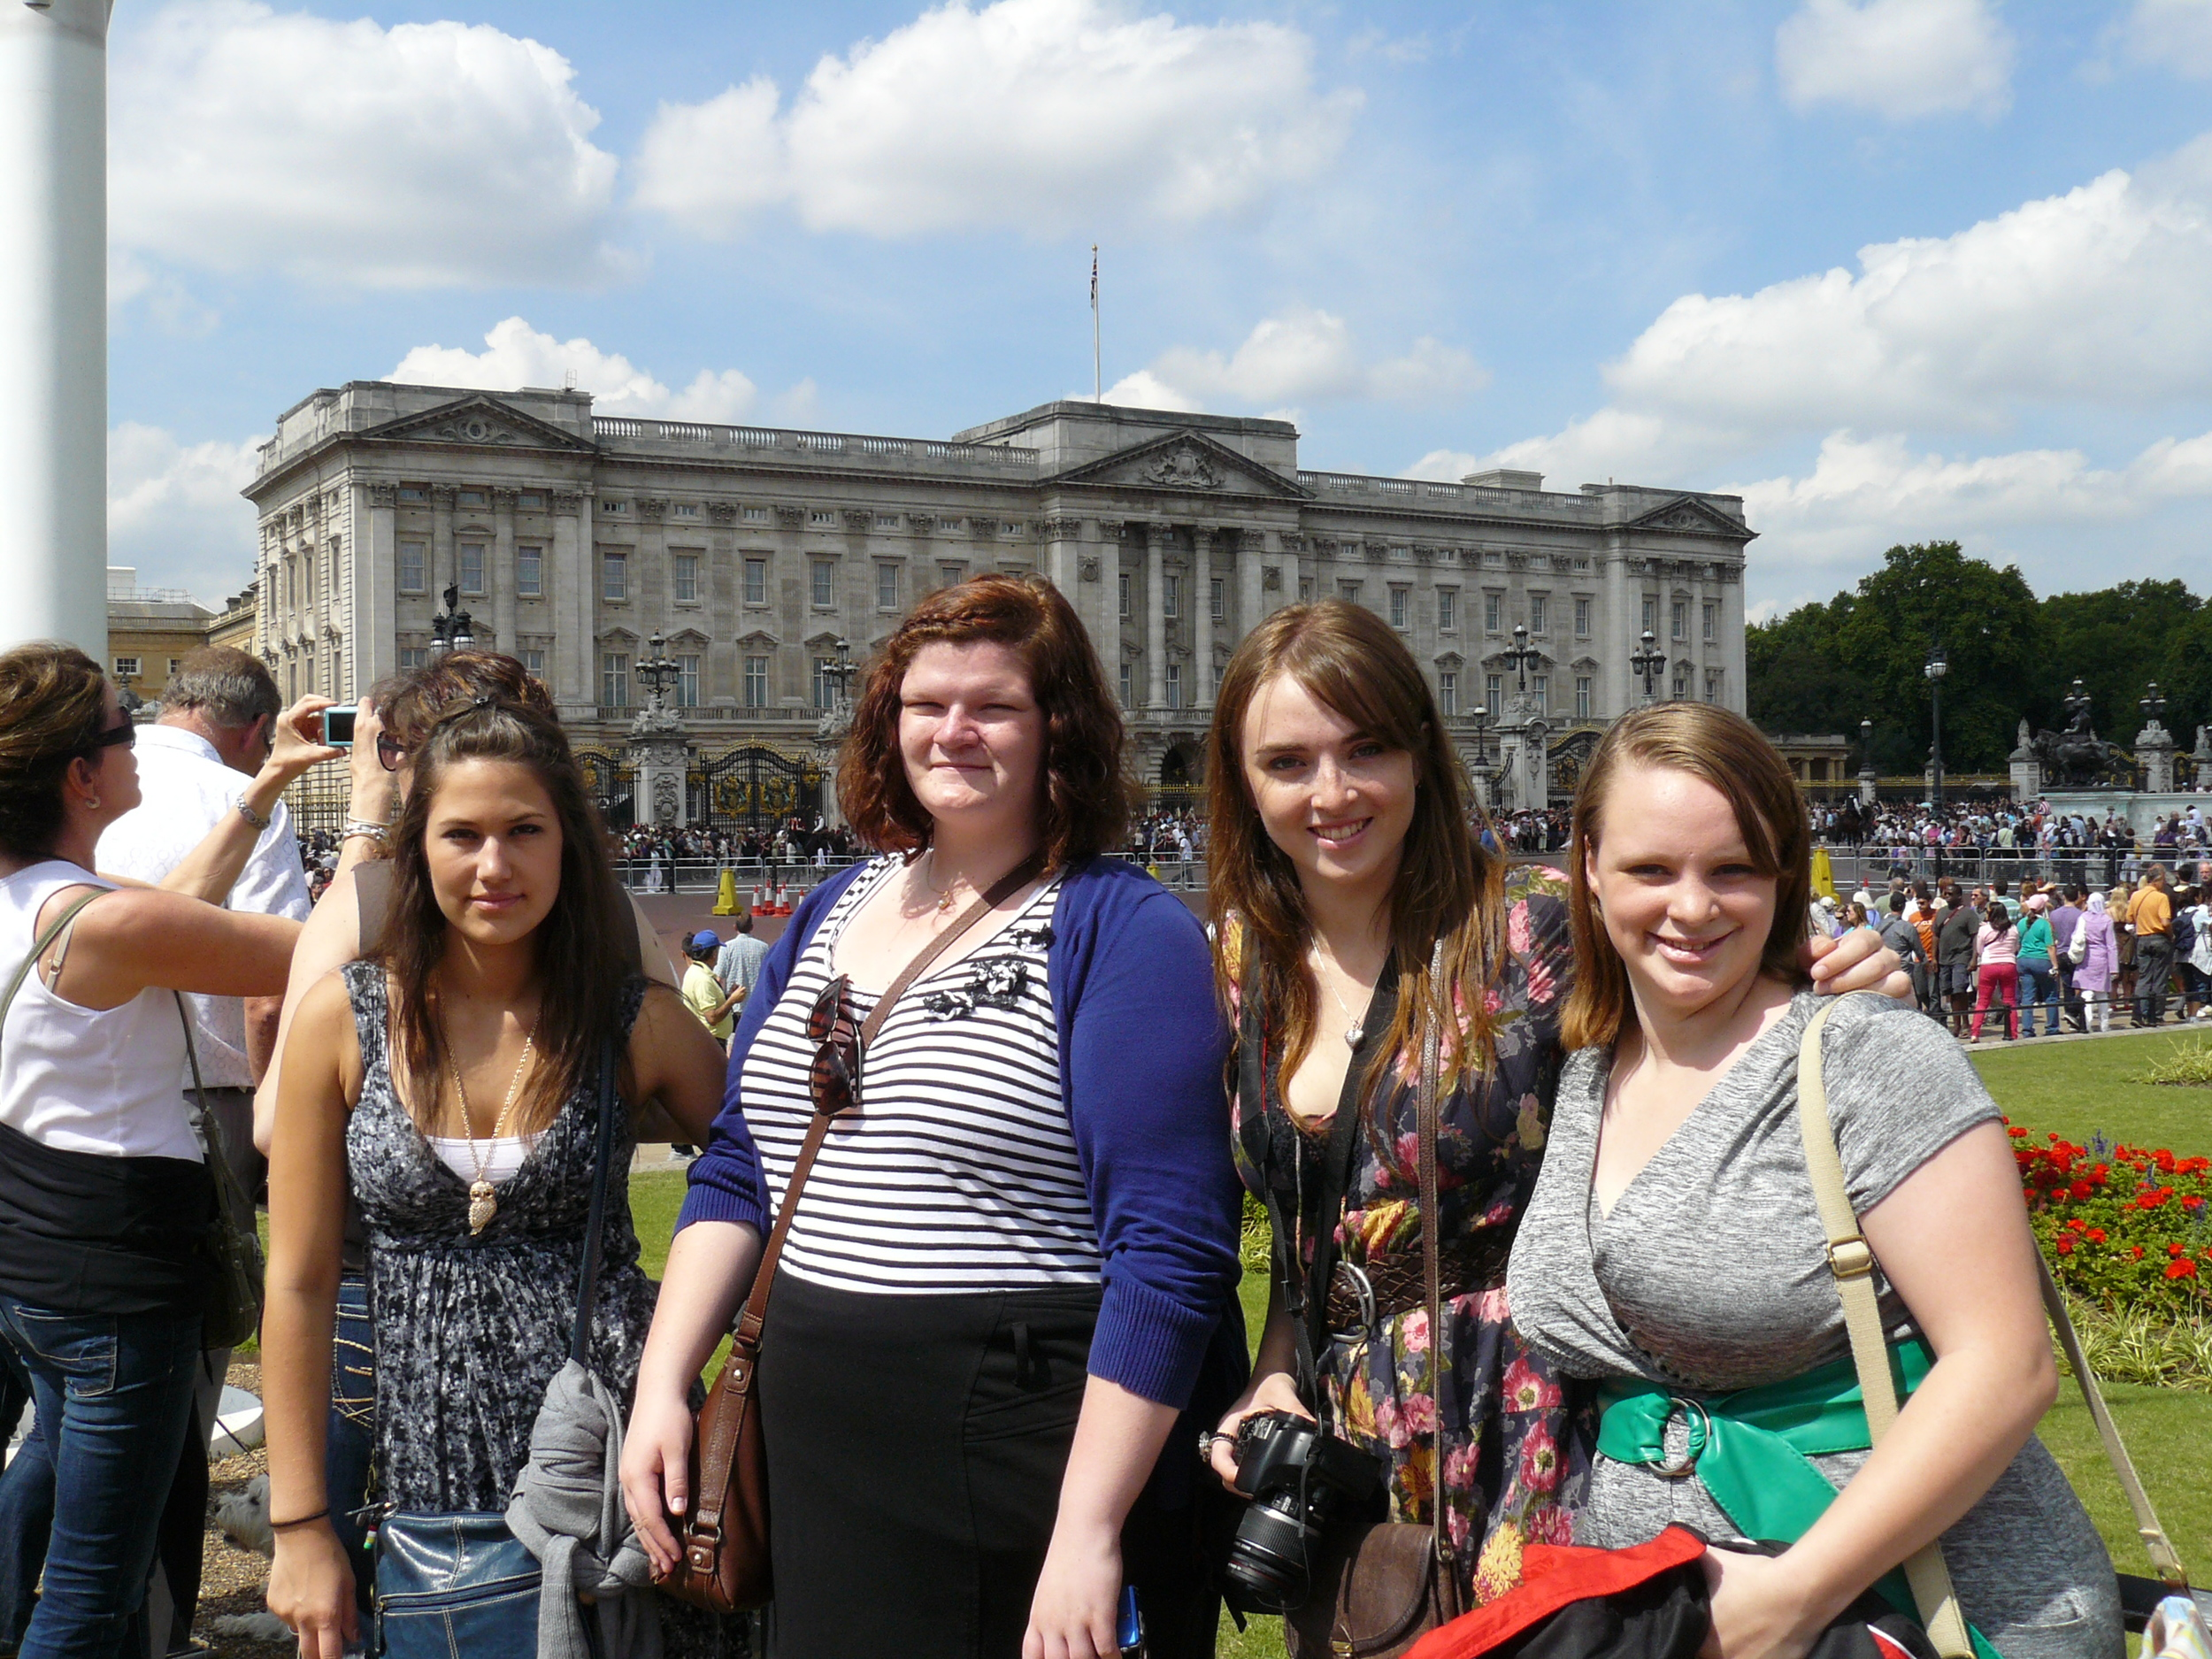 Four of our singers outside the front of Buckingham Palace.